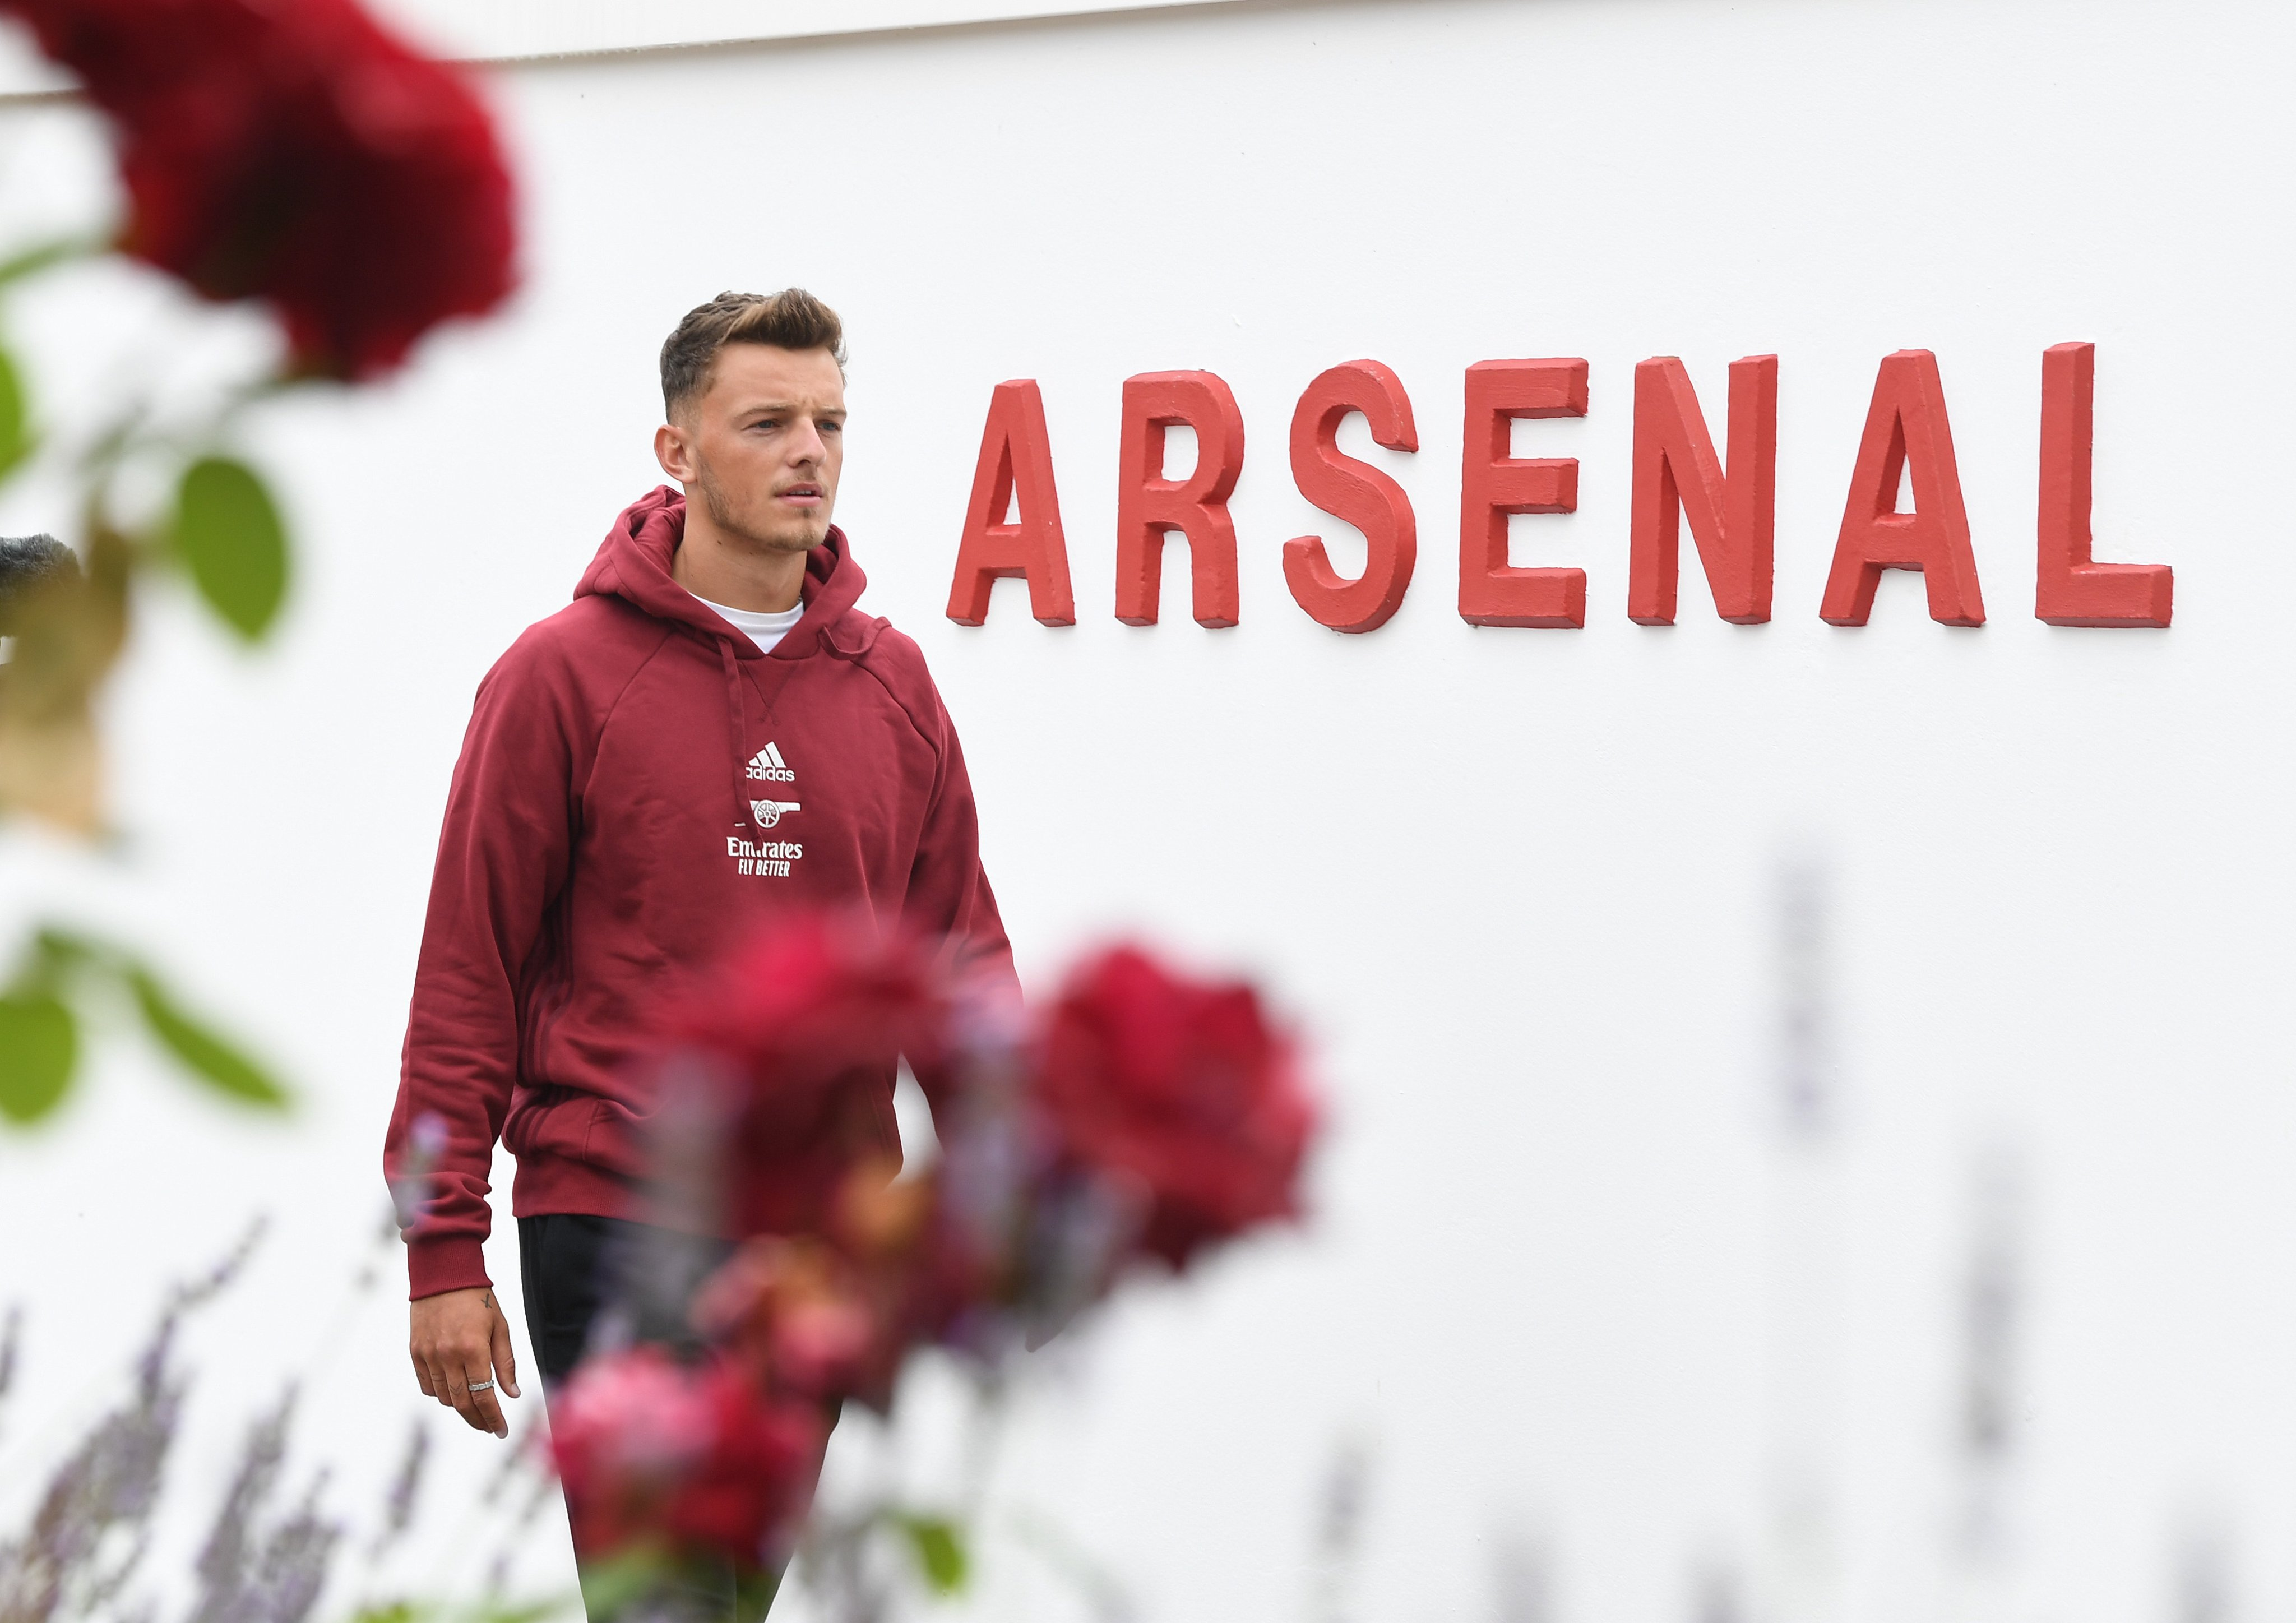 Arsenal officially sign White: Just 36 top flight appearances and the €58,340,000 price